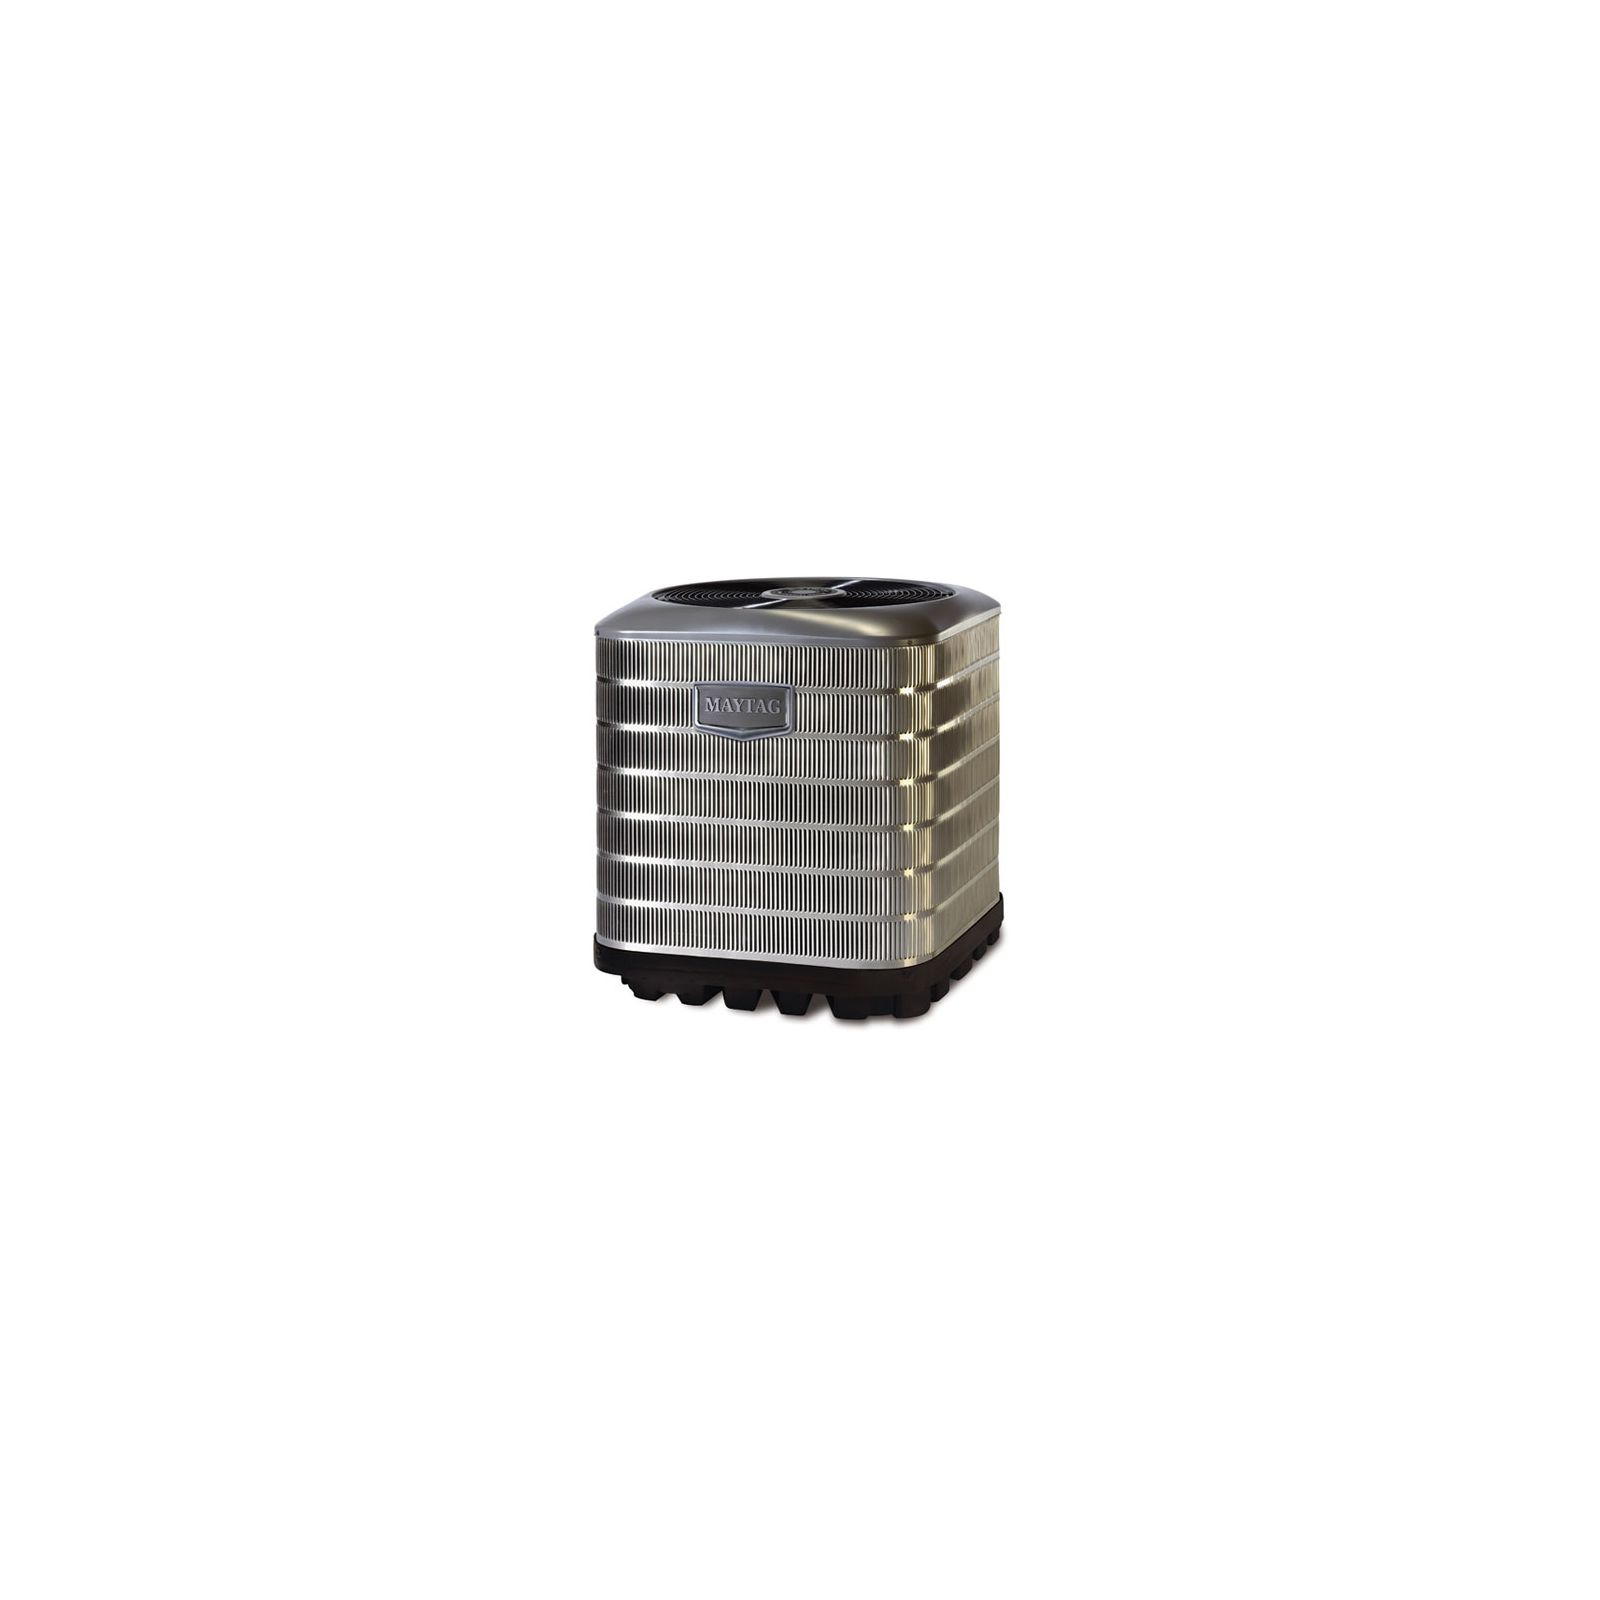 Maytag 920270P - PSH4BI036K - 3 Ton 23 SEER M1200 iQ Drive Extra High Efficiency Heat Pump, R410A